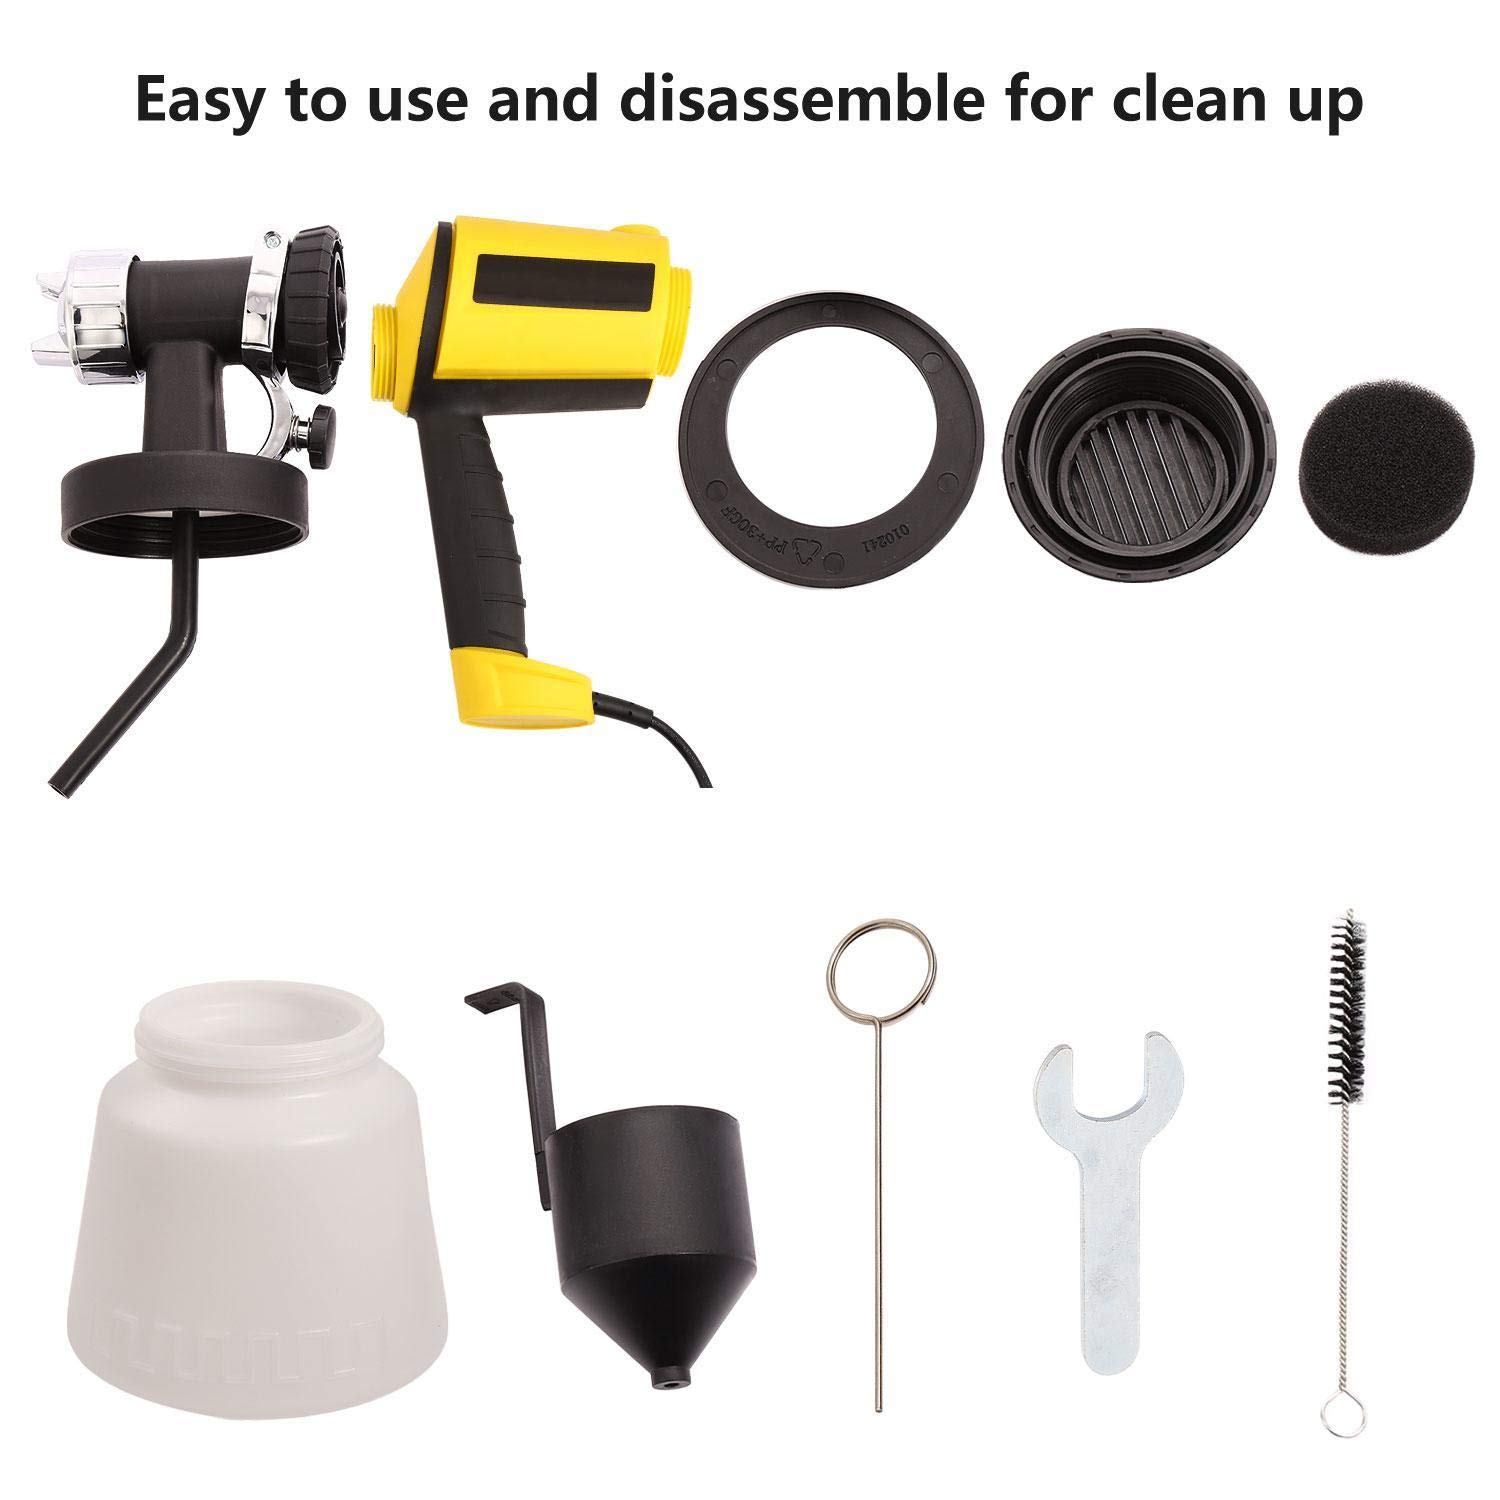 Professional Electric HVLP Paint Sprayer Portable House Paint Spray Gun with Three Spray Patterns for Cars Home Door Painting Jobs